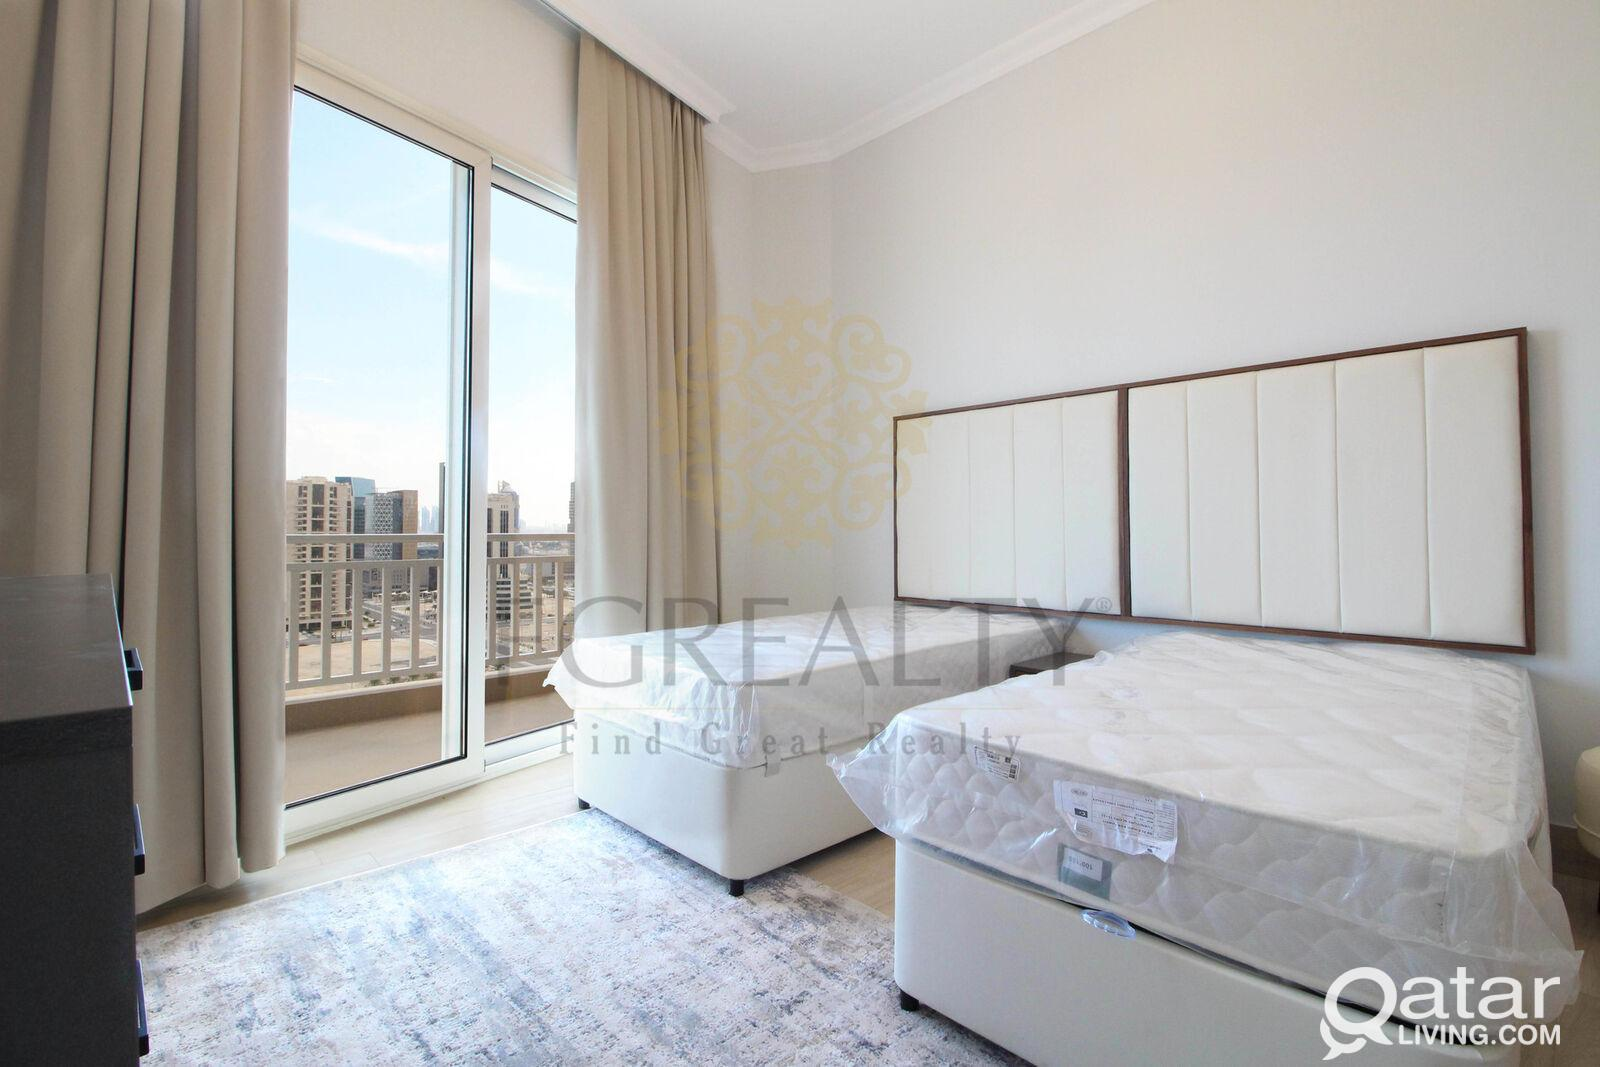 BILLS INCLUDED: Furnished 2BR Apt in Lusail + 2 mo